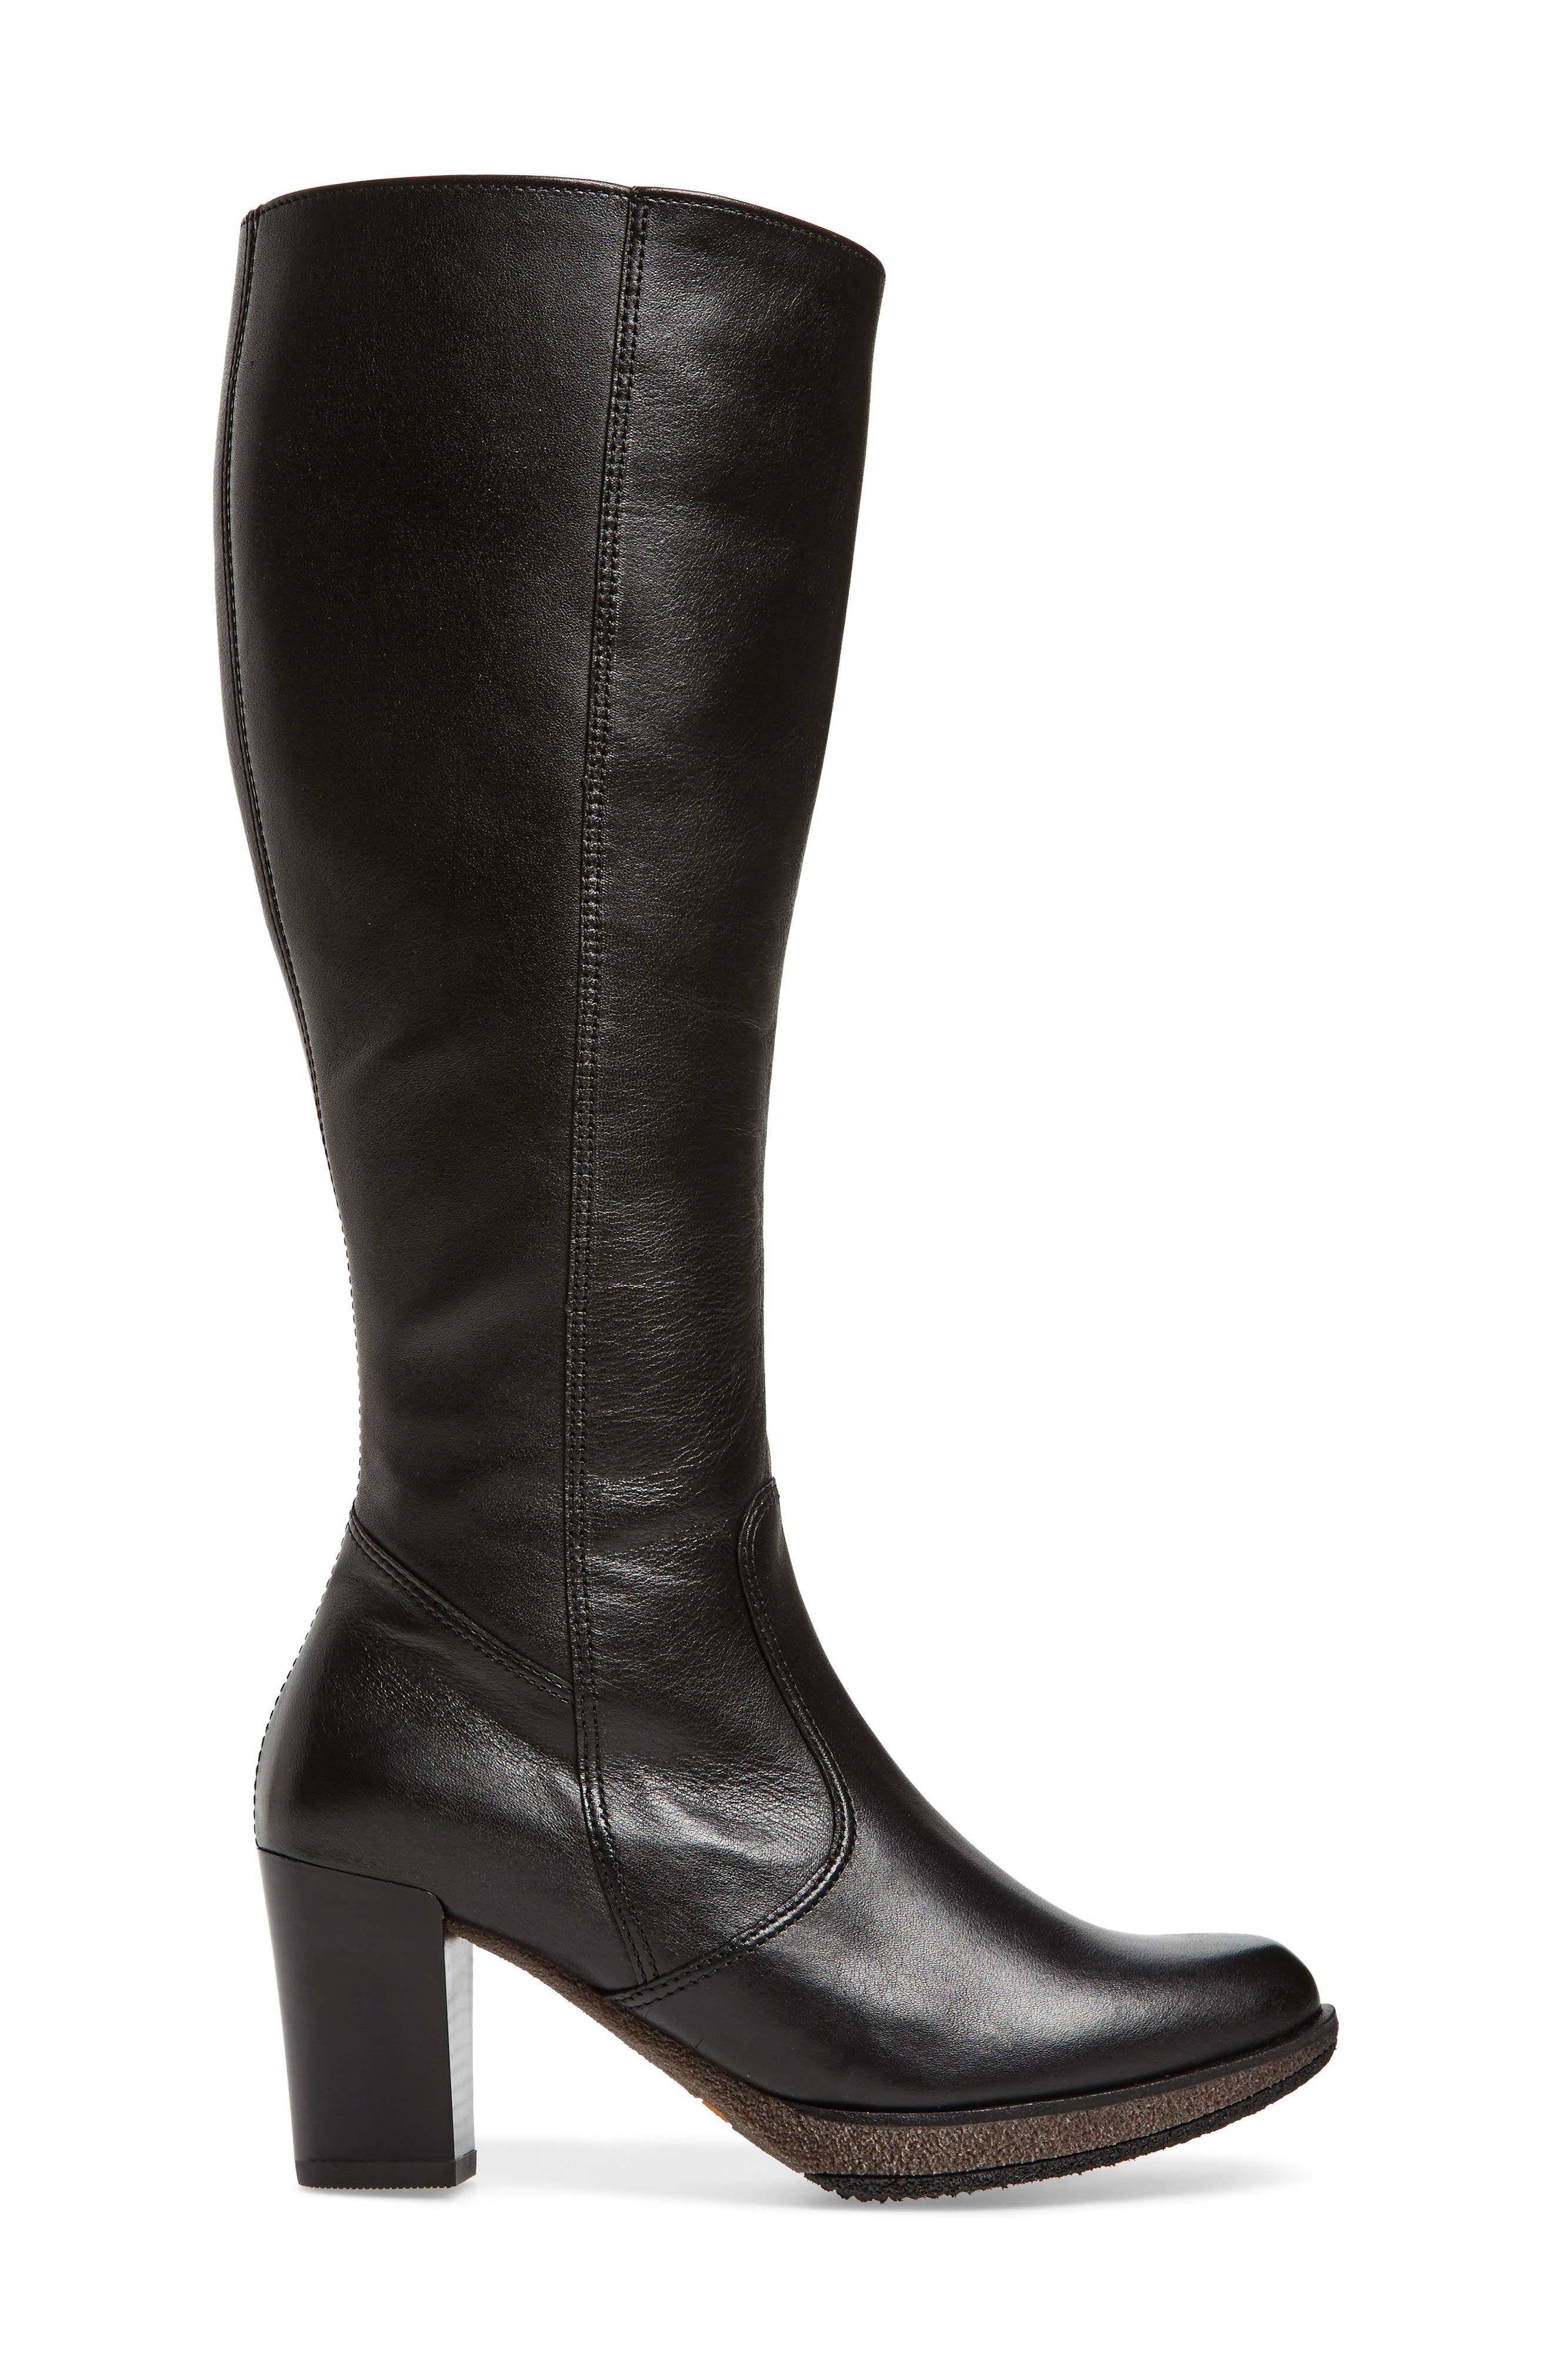 Bexley Knee High Boot,                             Alternate thumbnail 3, color,                             Black Leather